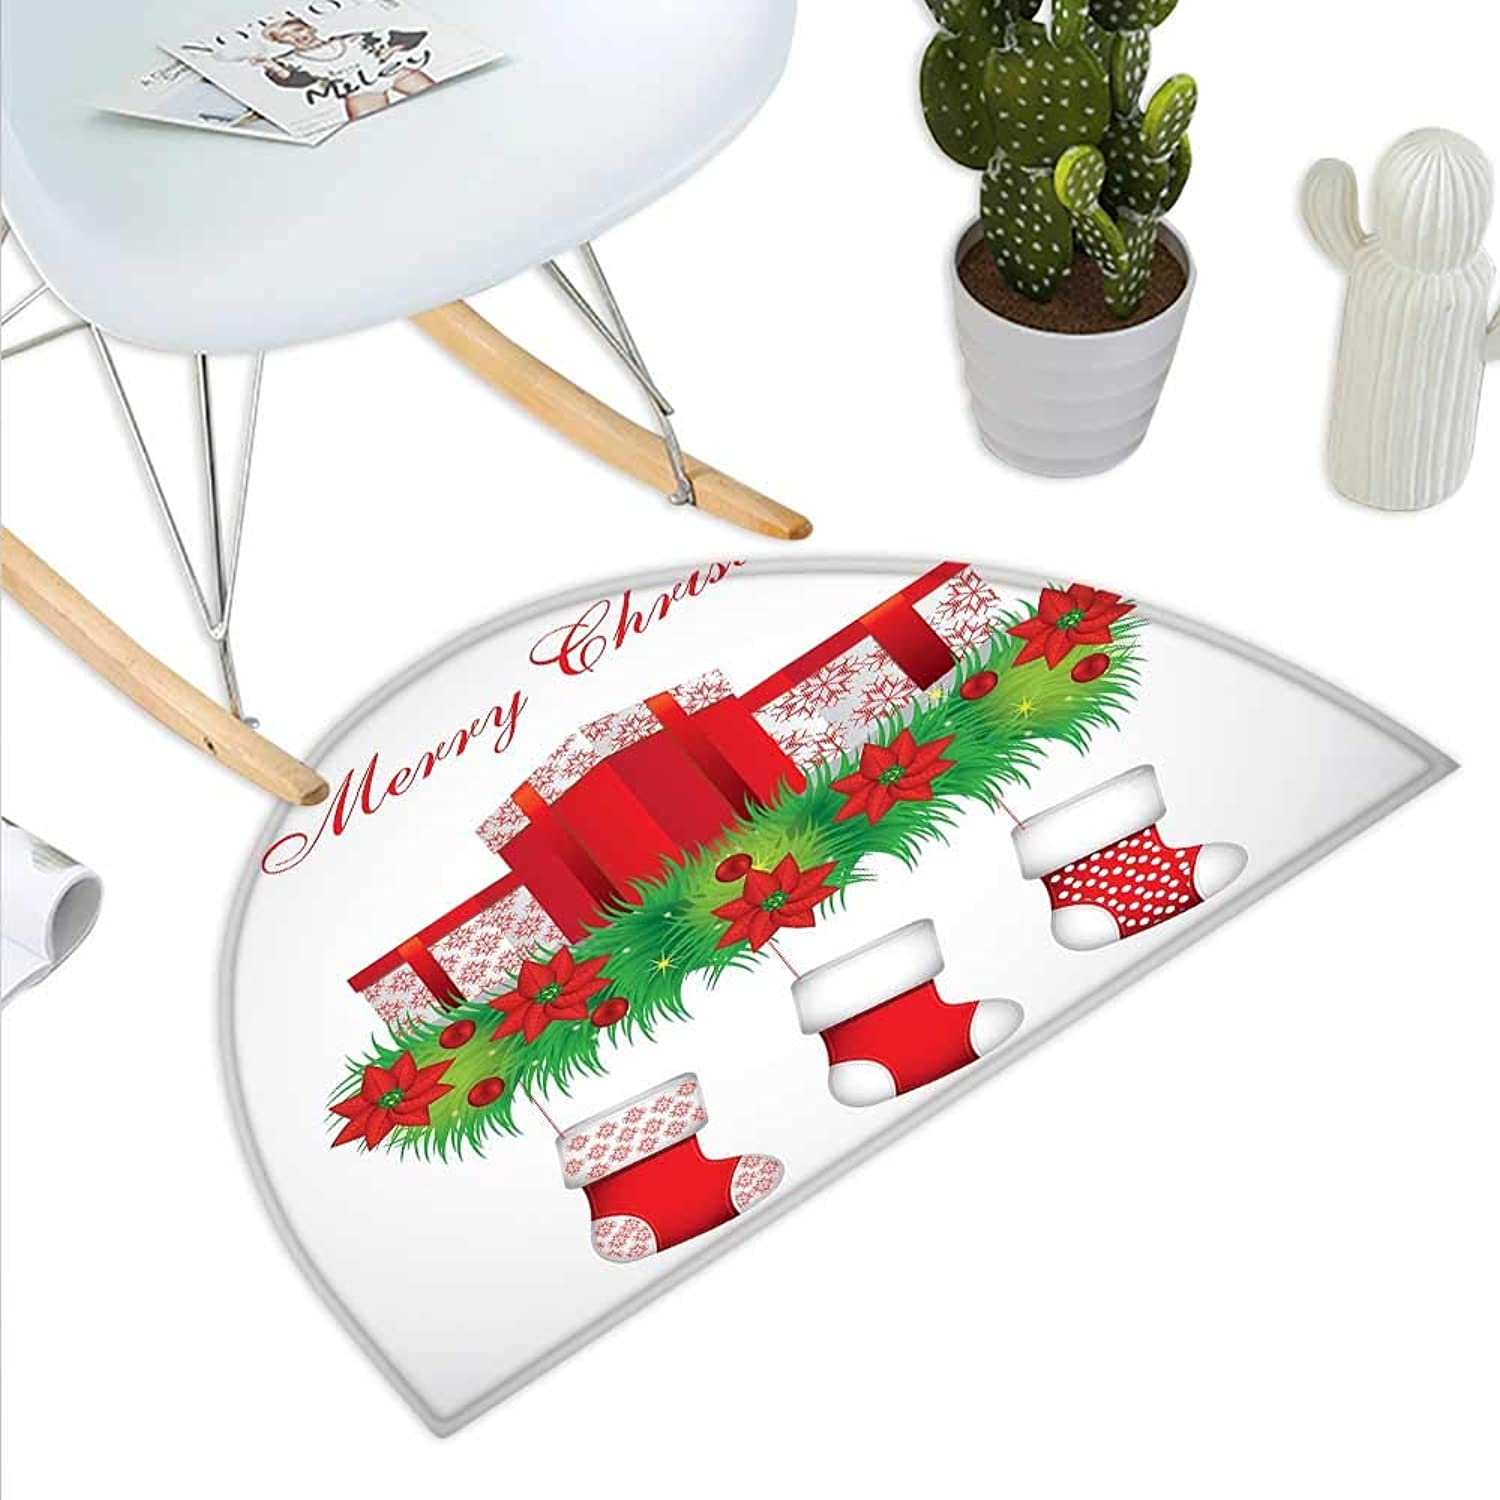 Christmas Semicircle Doormat Stockings Hanging for Santa Mistletoe Illustration Merry Christmas for All Halfmoon doormats H 47.2  xD 70.8  Red Emerald White